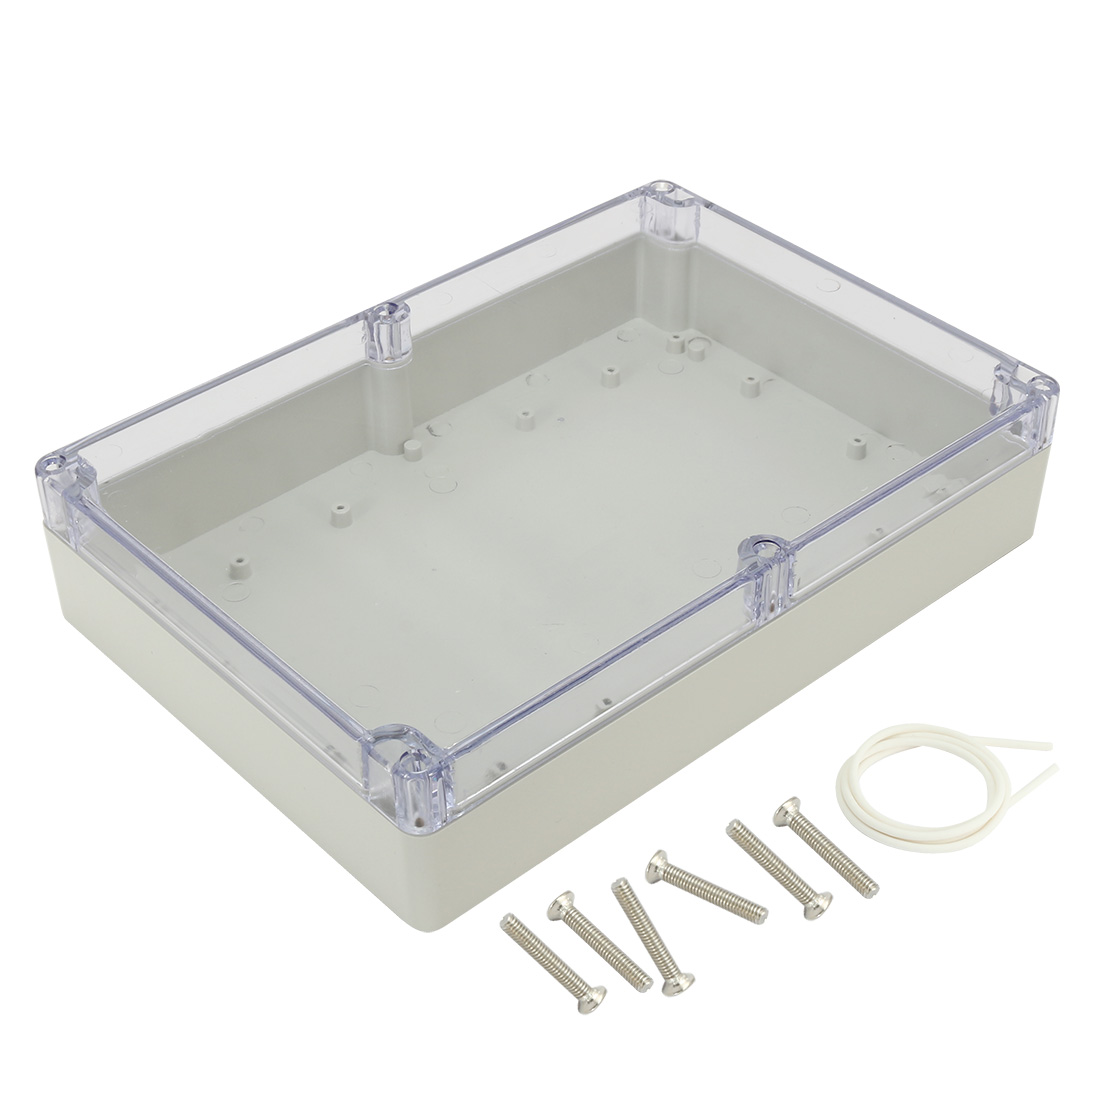 """10.4""""x7.2""""x2.4""""(263mmx182mmx60mm) ABS Junction Box Electric Project Enclosure Clear"""